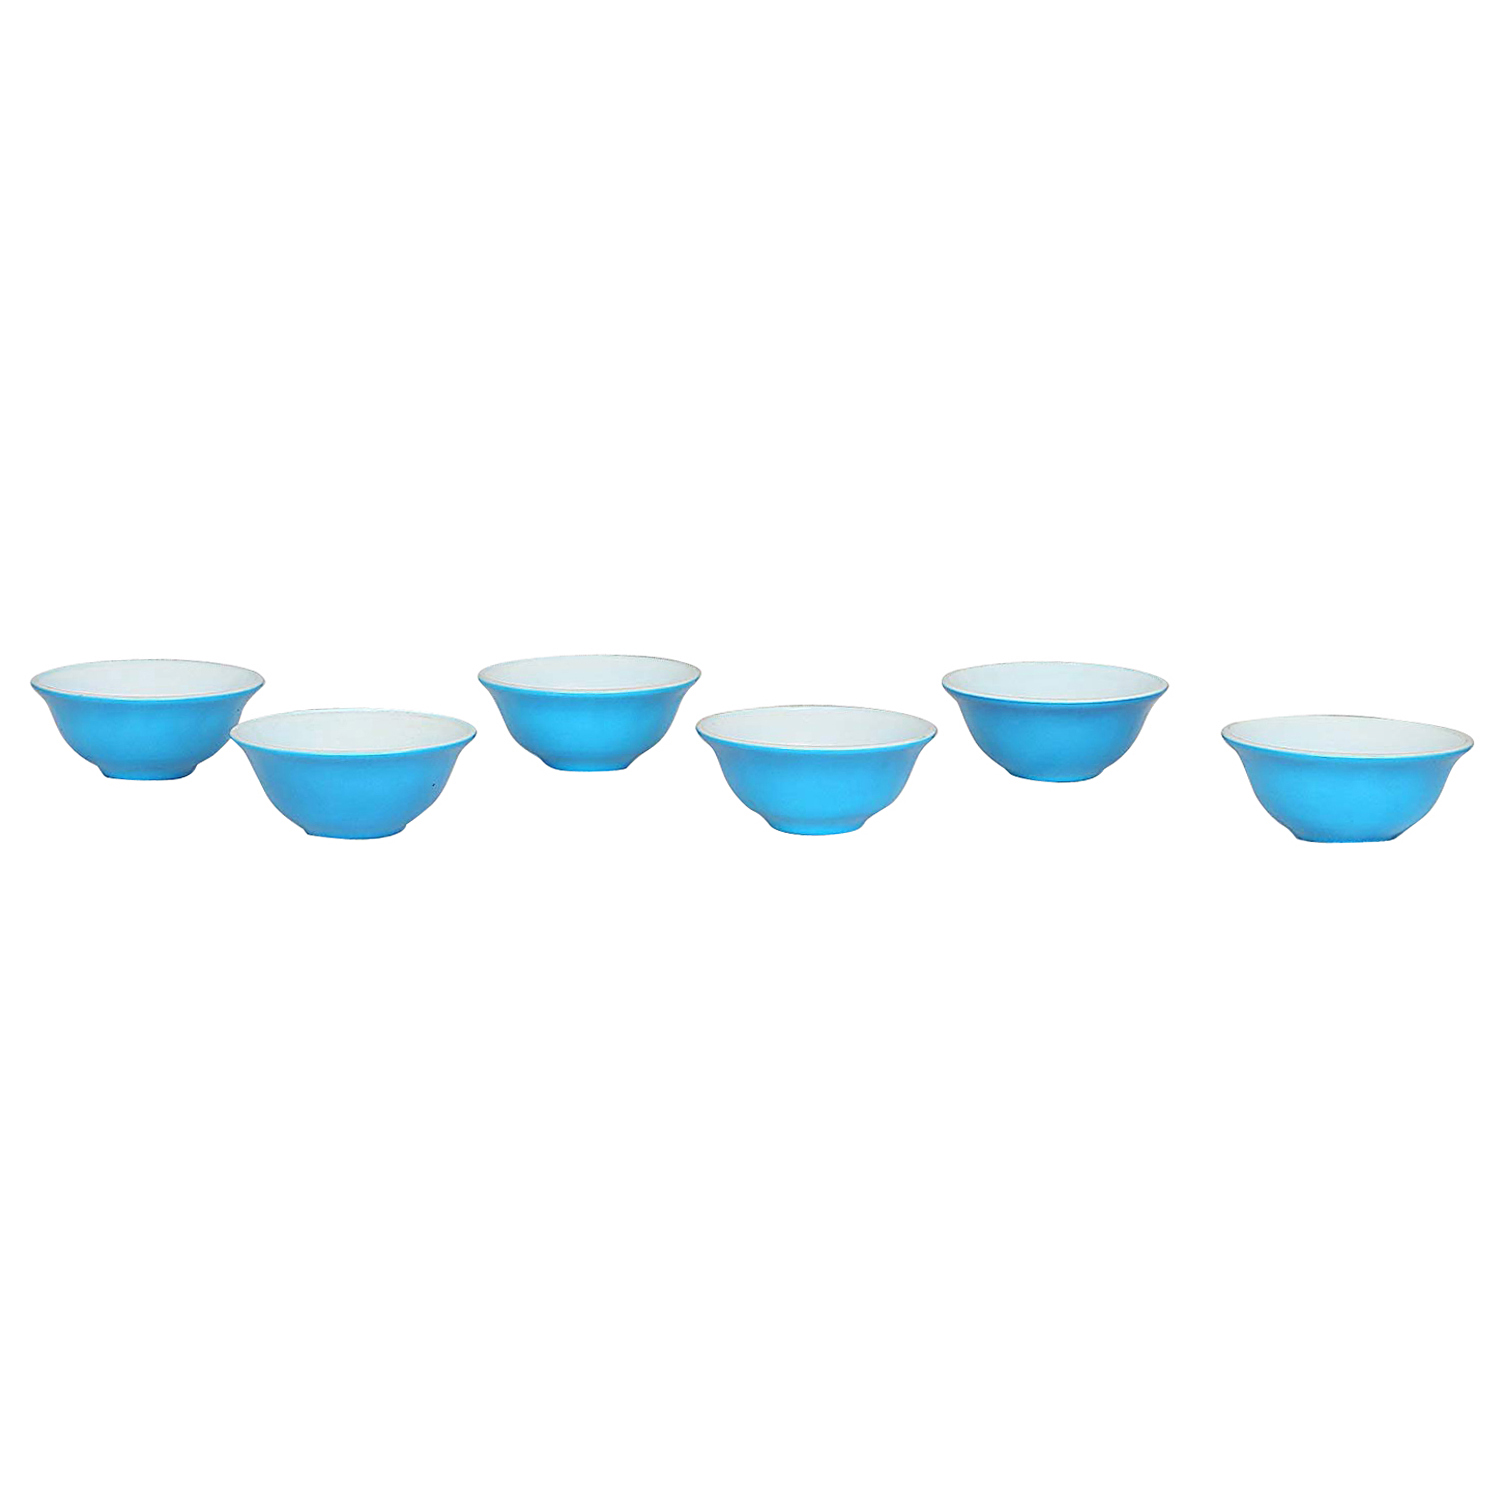 adaraforever Exclusive Metalic Sky Blue White Opal Glass Bowl Size Small set of 6 pcs.